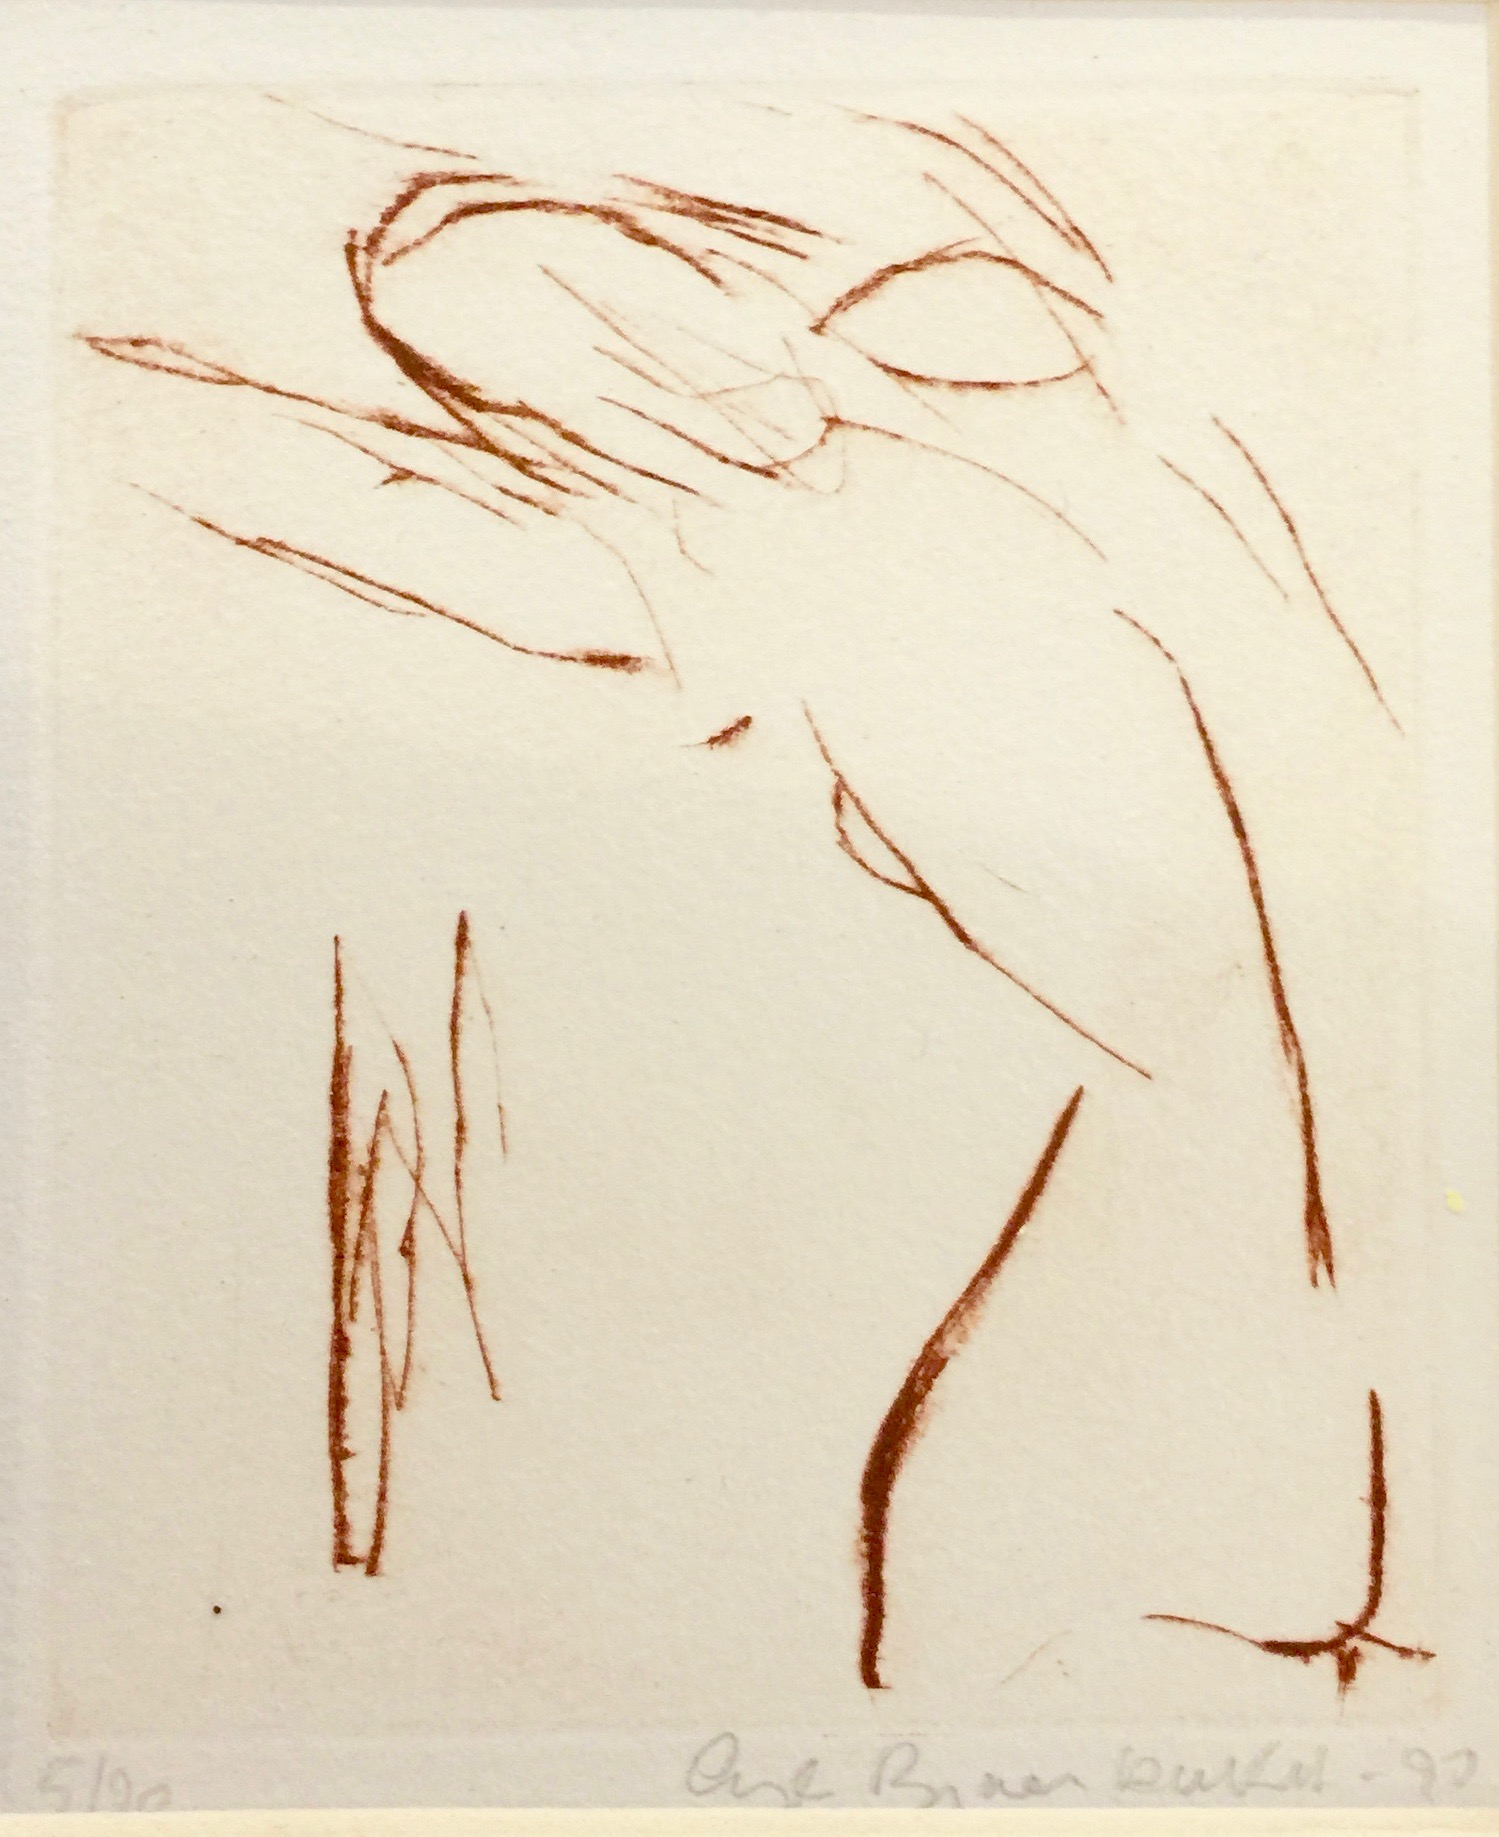 Angela Brignone Duckert - Nude no 2